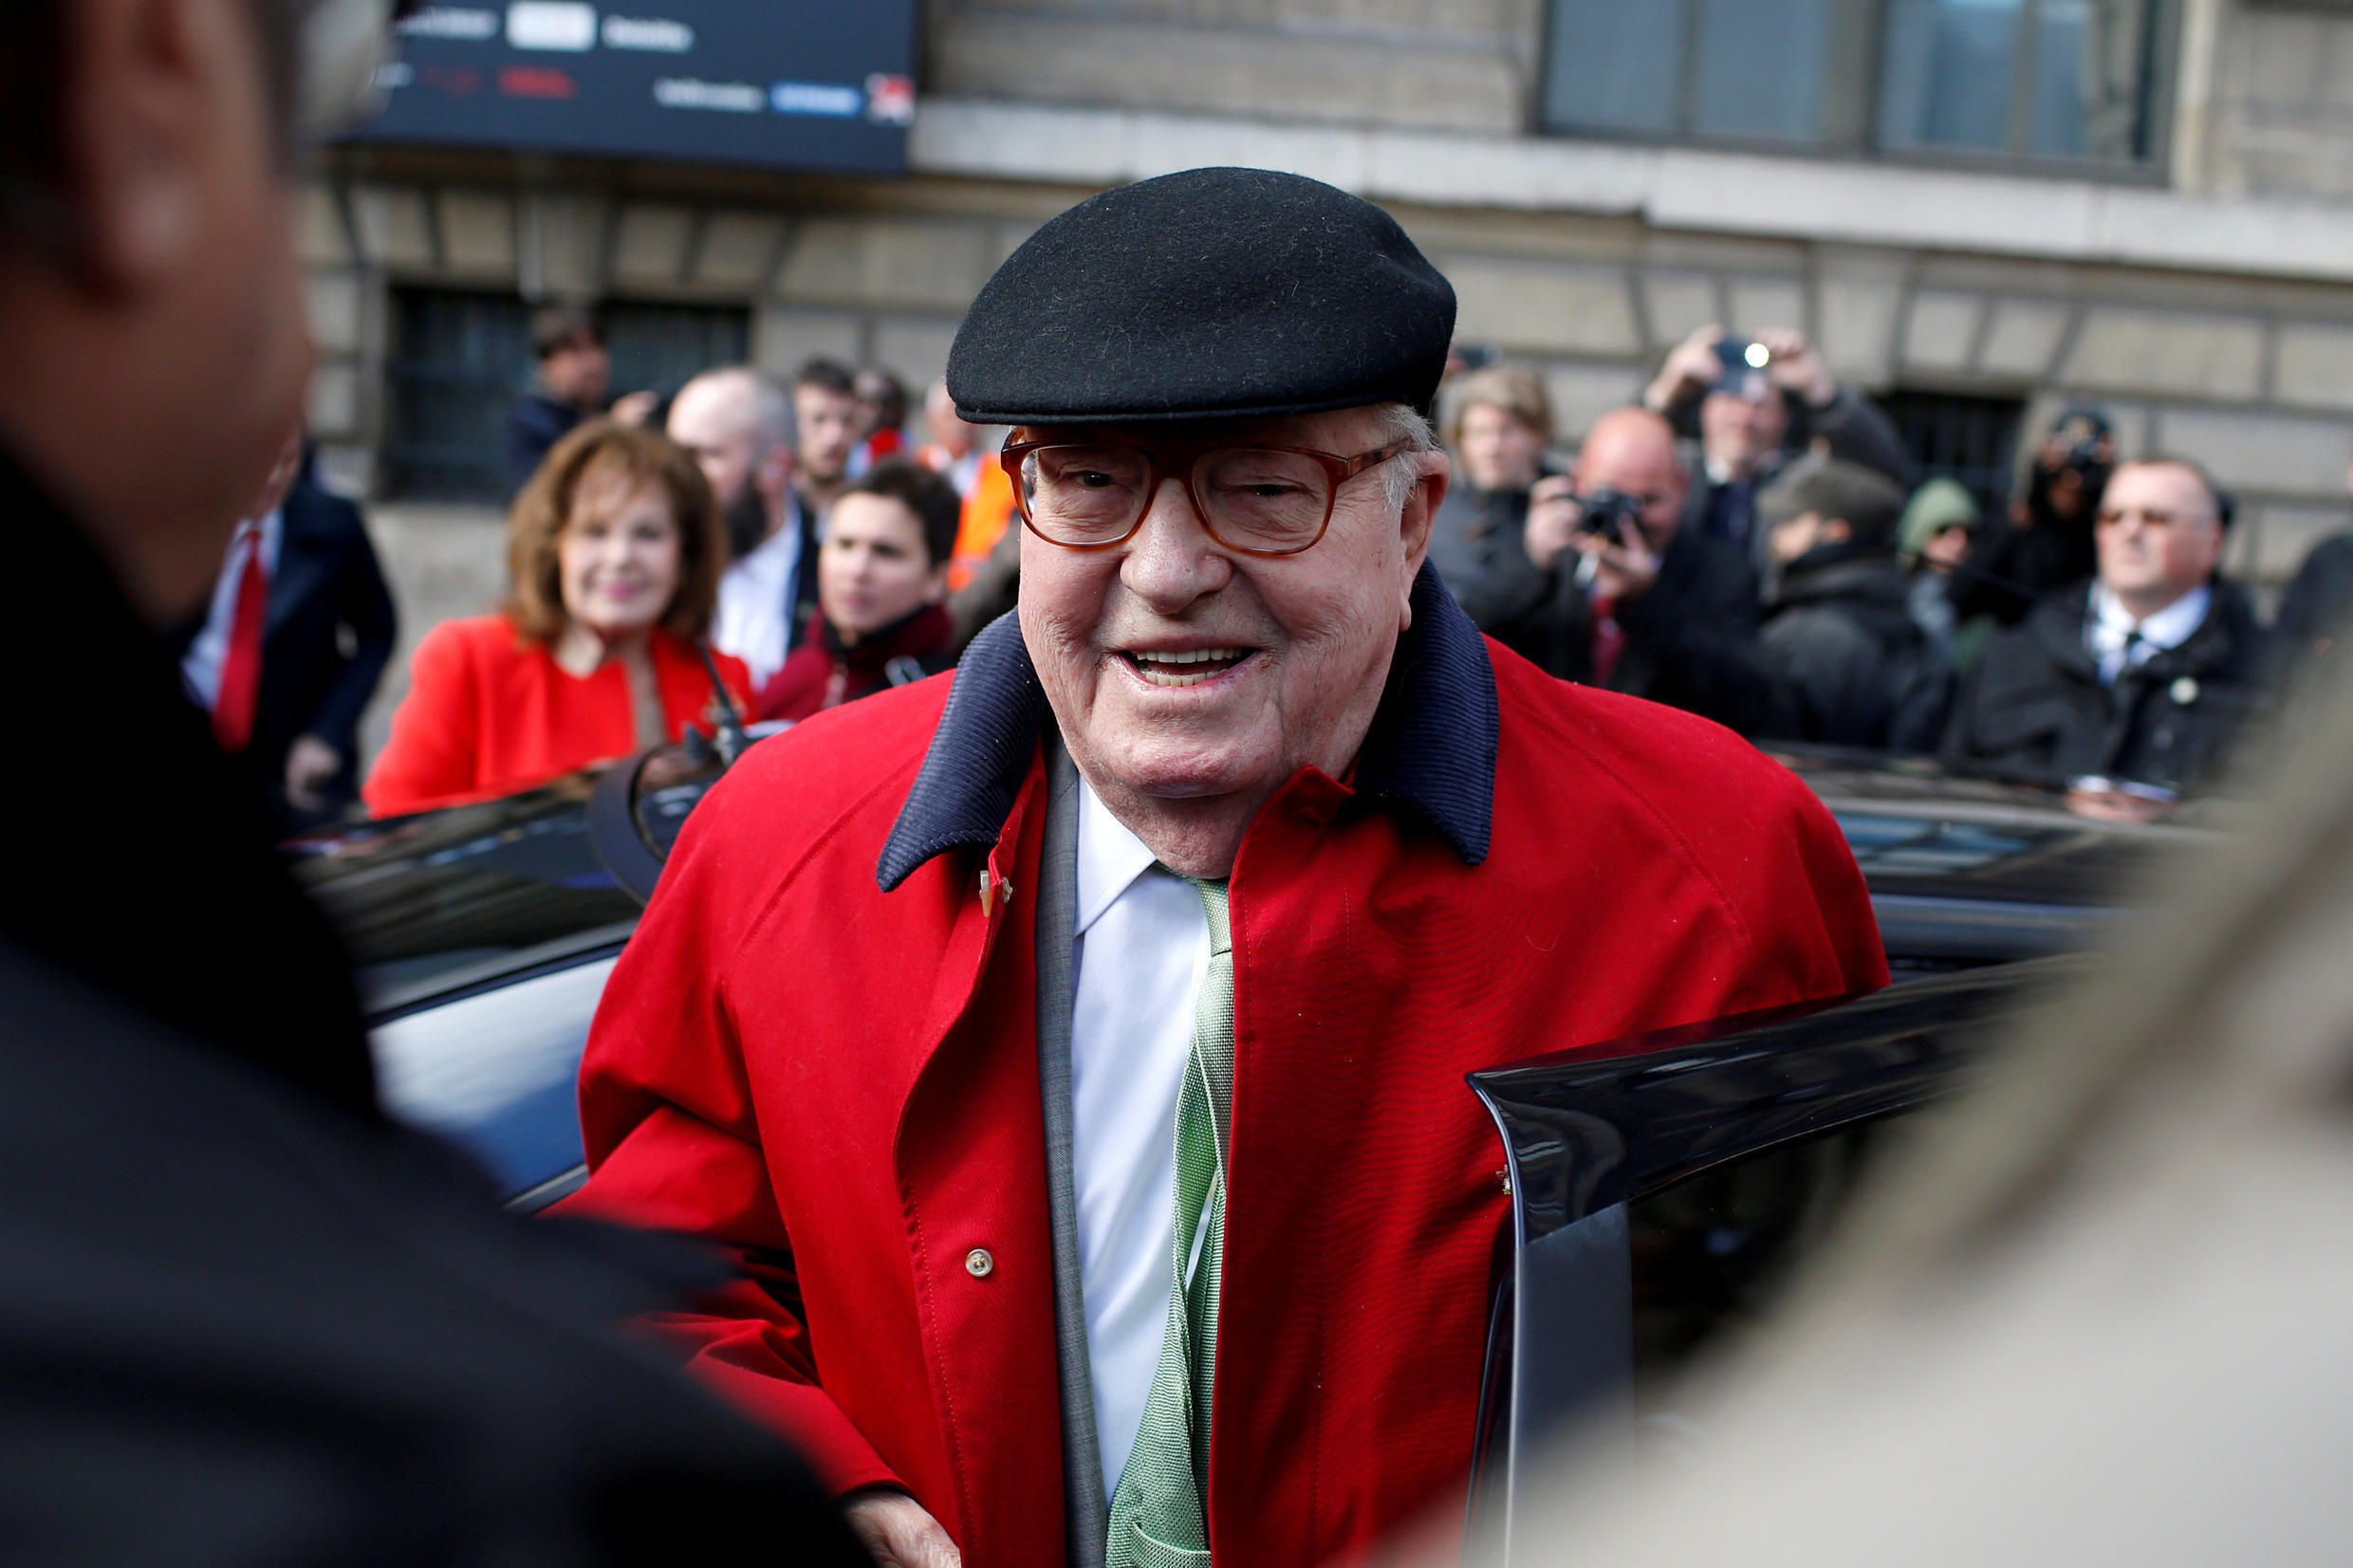 Jean-Marie Le Pen at the National Front's annual May Day parade last year